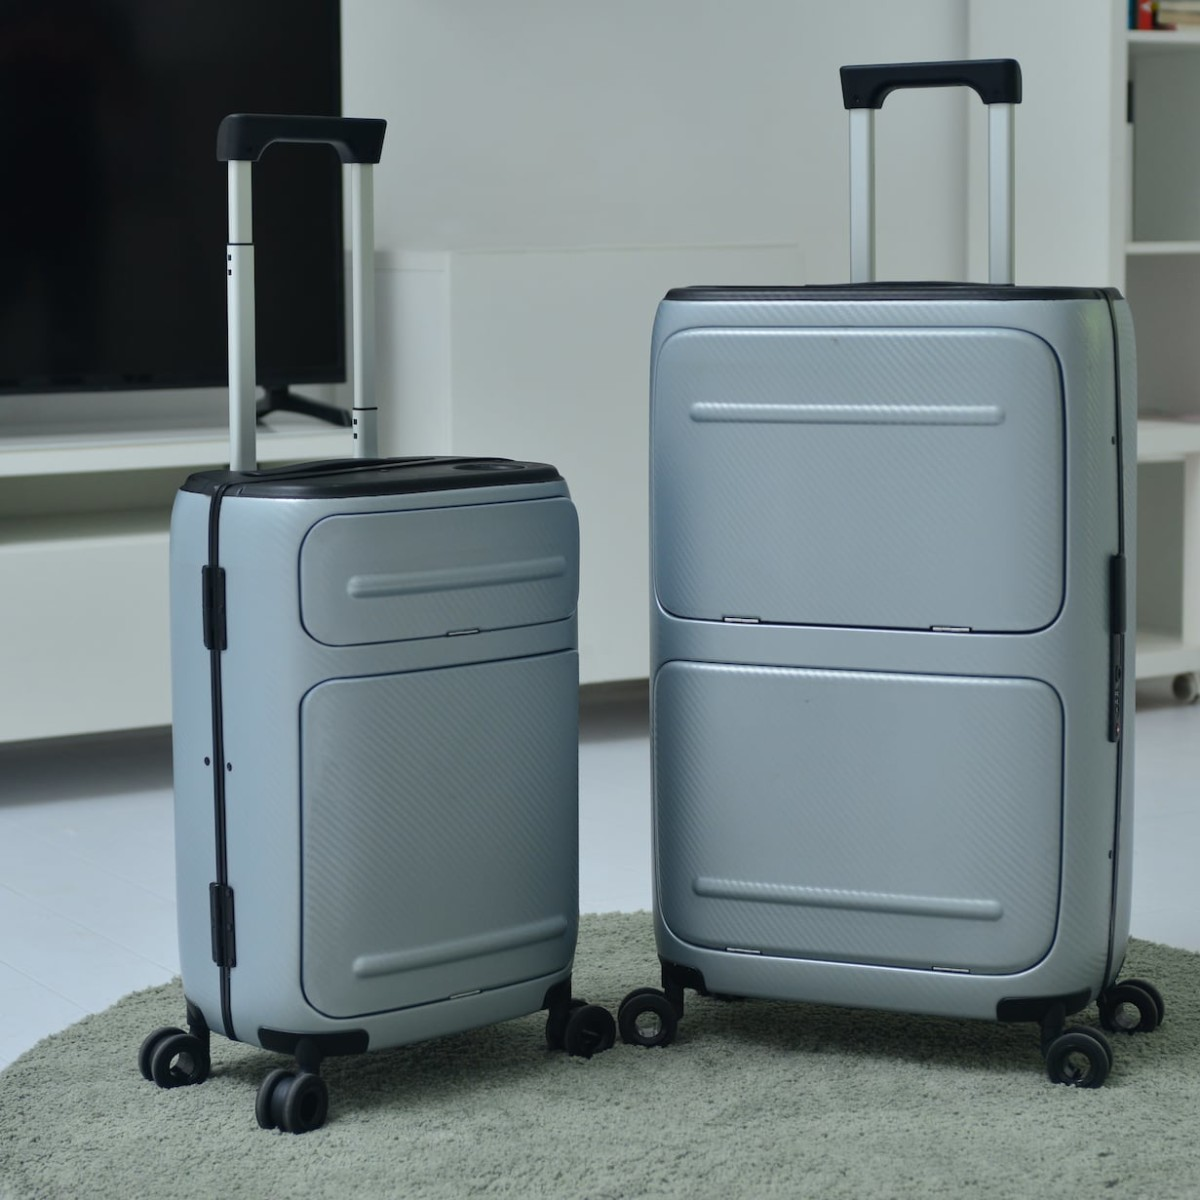 SkyTrek Vertically Opening Smart Luggage has an integrated global tracking system